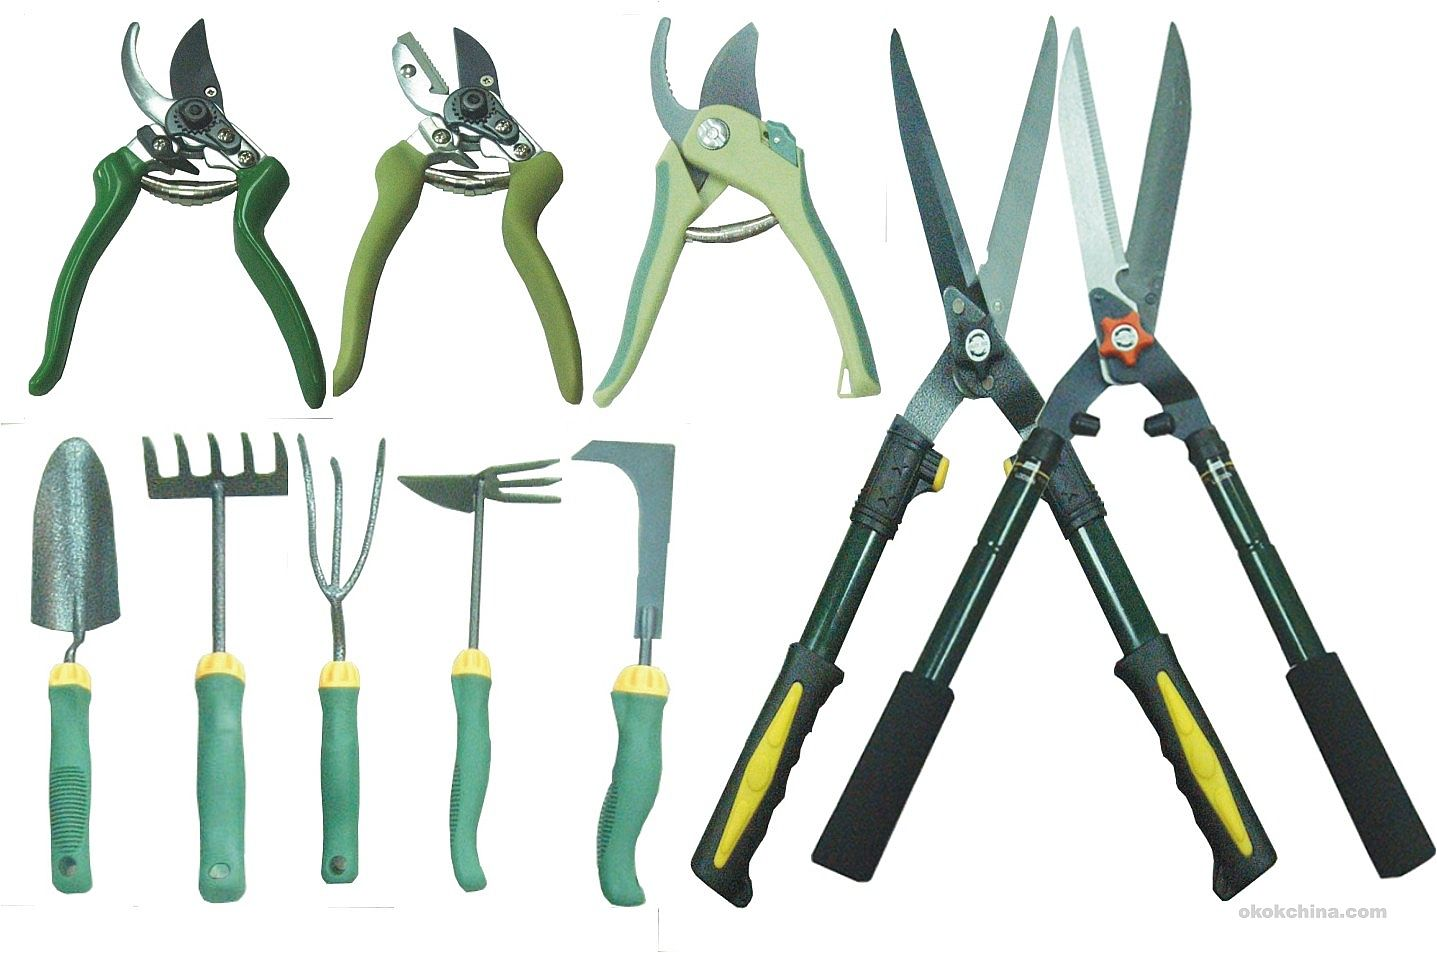 Gardening tools and compost advice garden tools and basic for Common garden hand tools